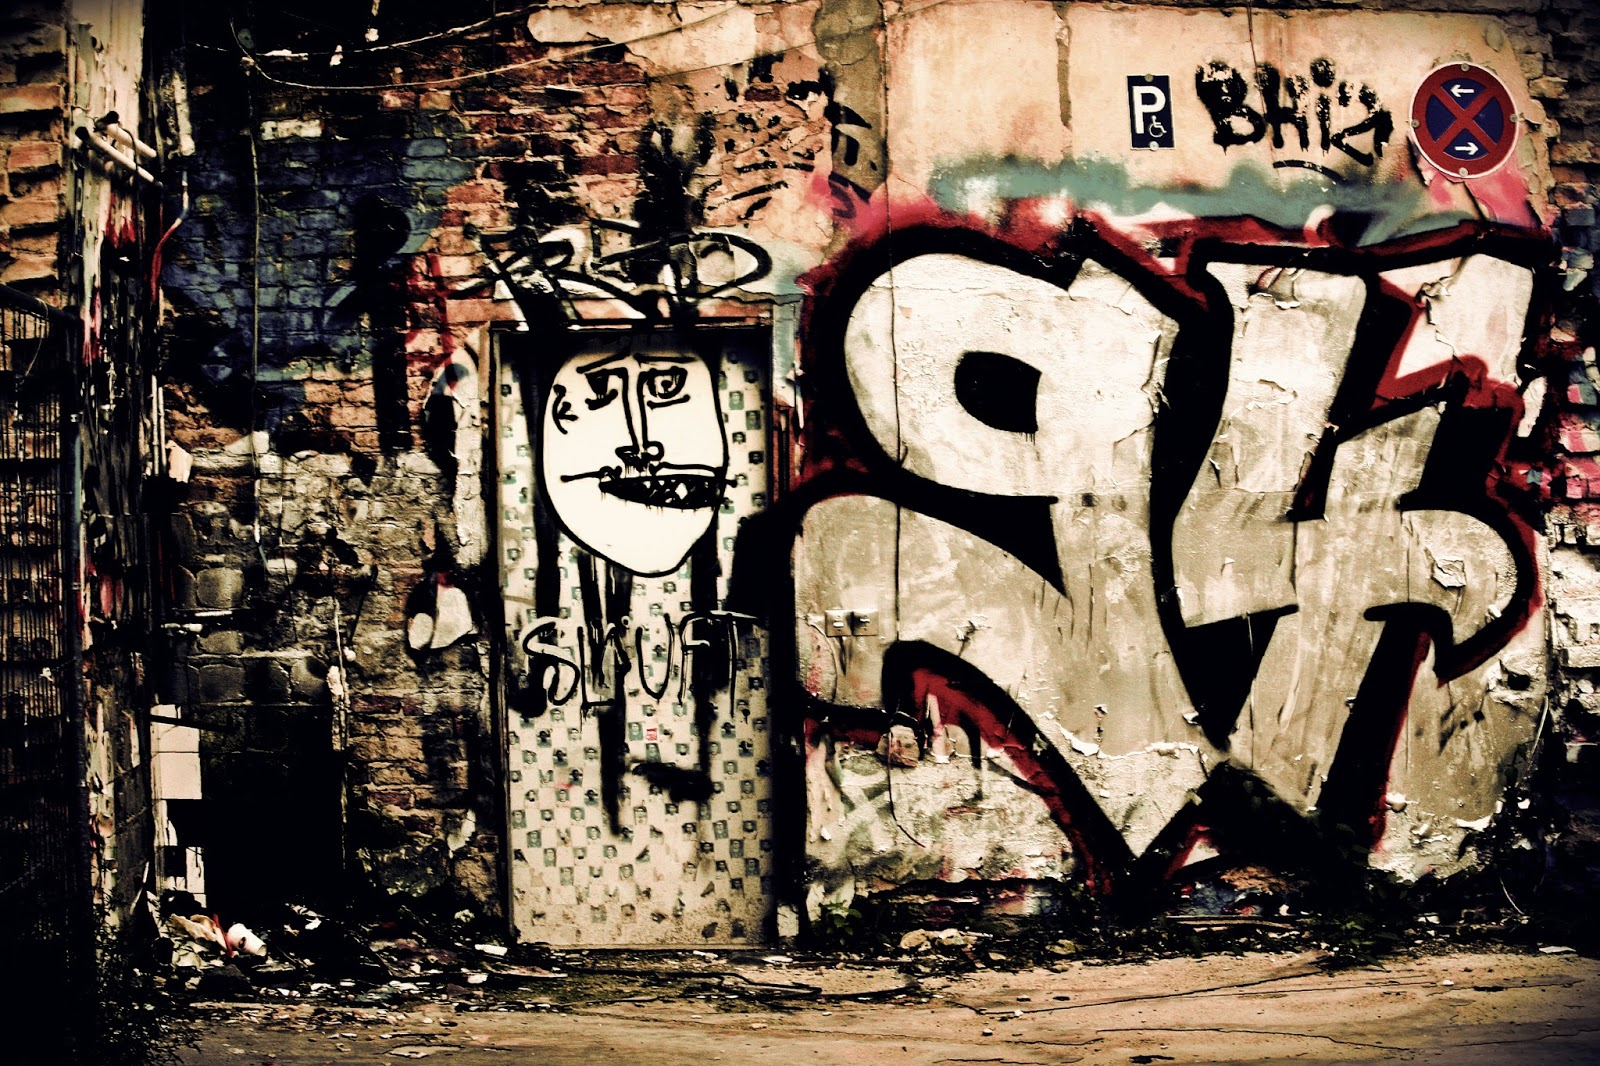 Graffiti photography hd wallpapers high definition free graffiti hd wallpapers voltagebd Image collections